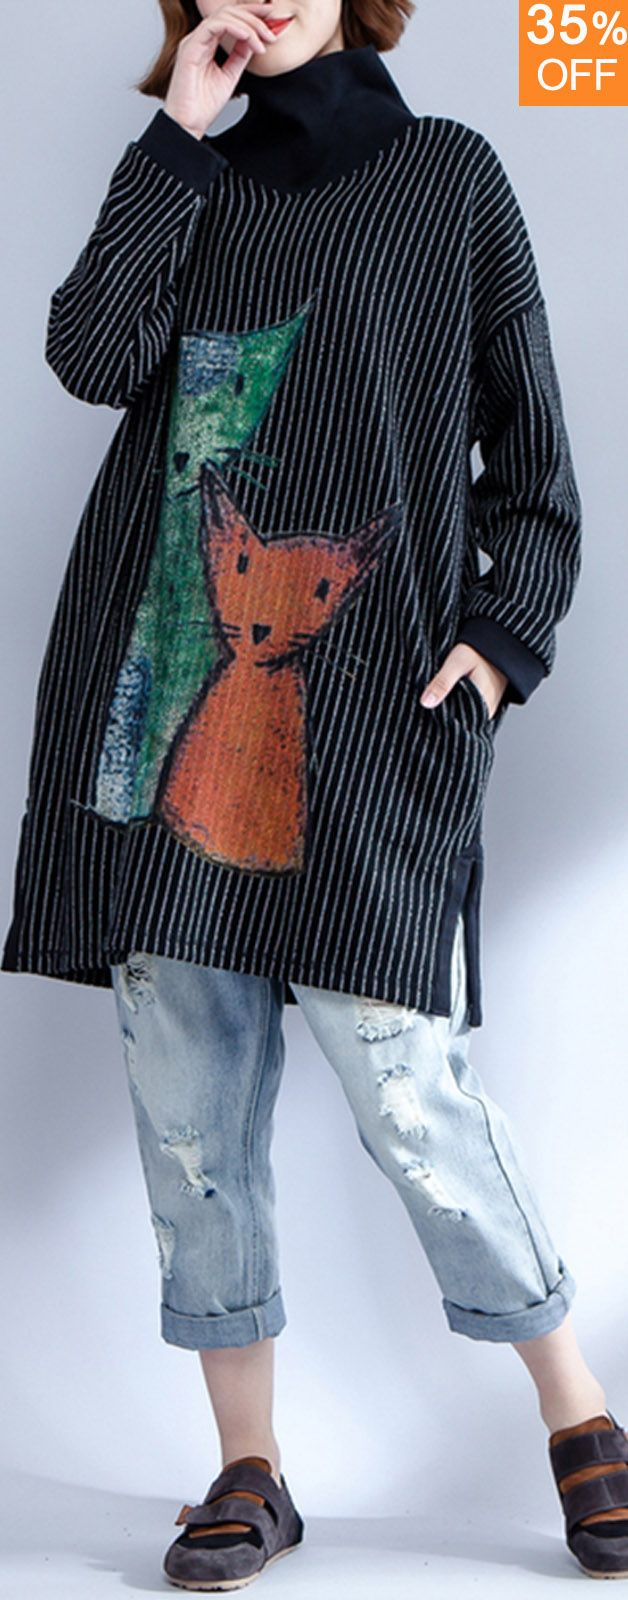 Plus Size Casual Women Cat Plaid Printed Batwing Sleeve Sweatshirts. Loose Style... 1